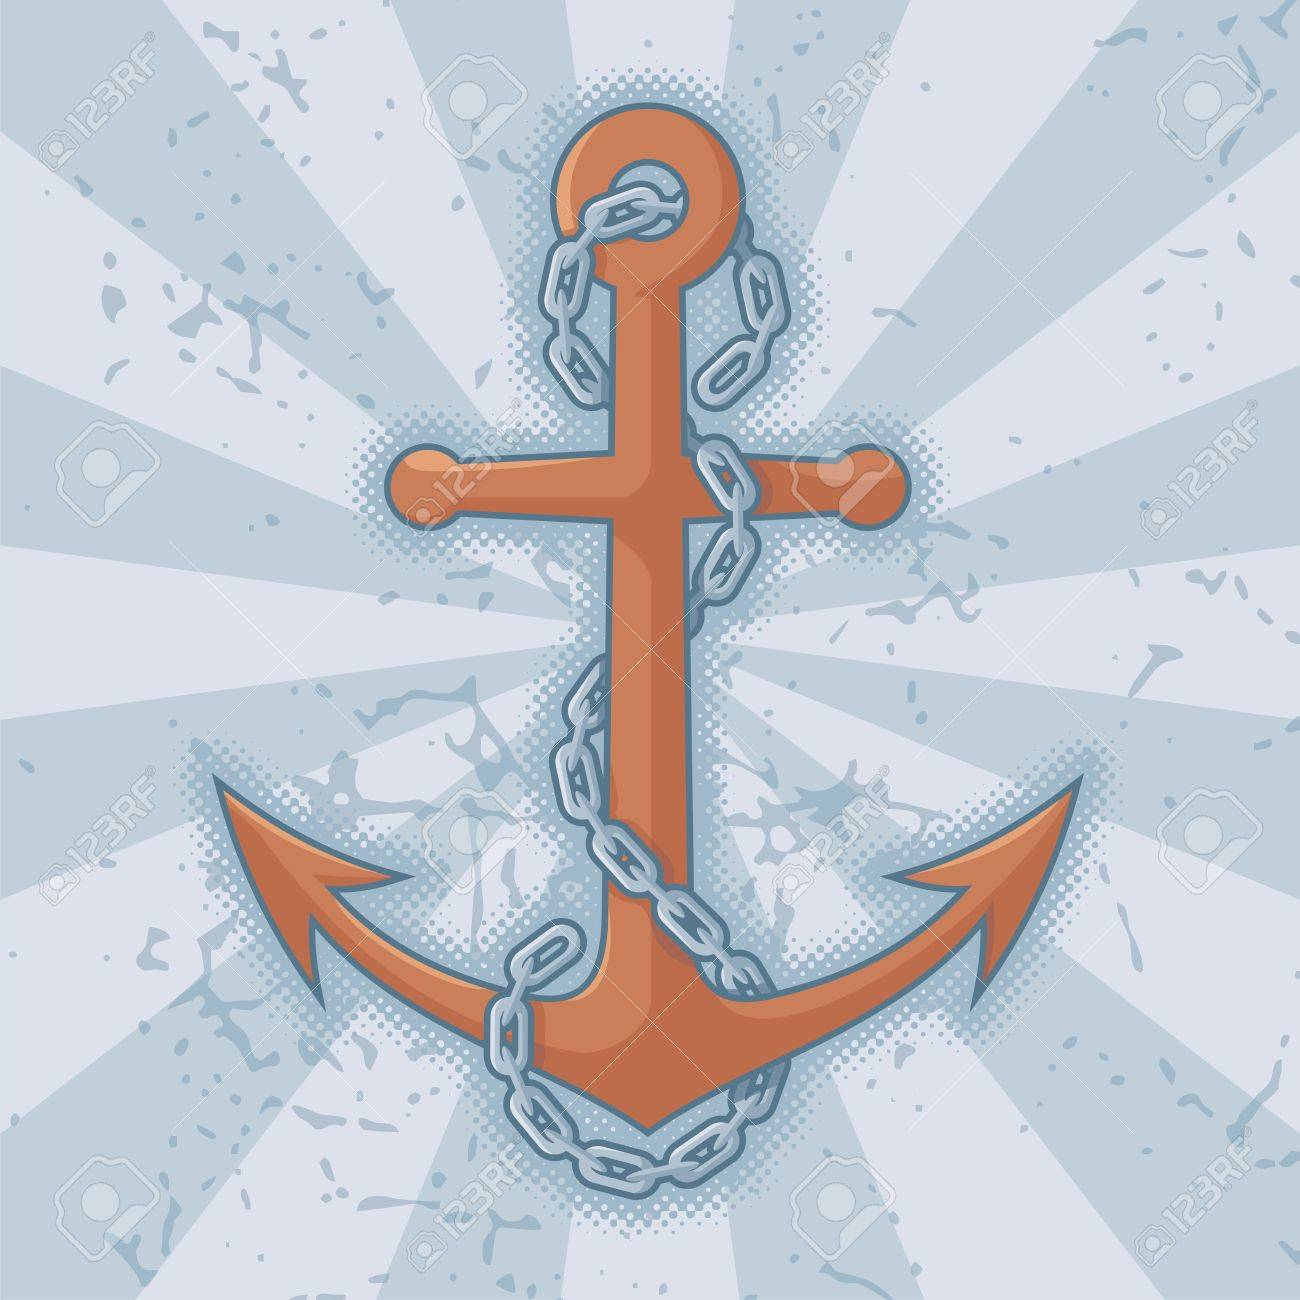 Anchor with chain icon on grunge light blue background. - 14813412